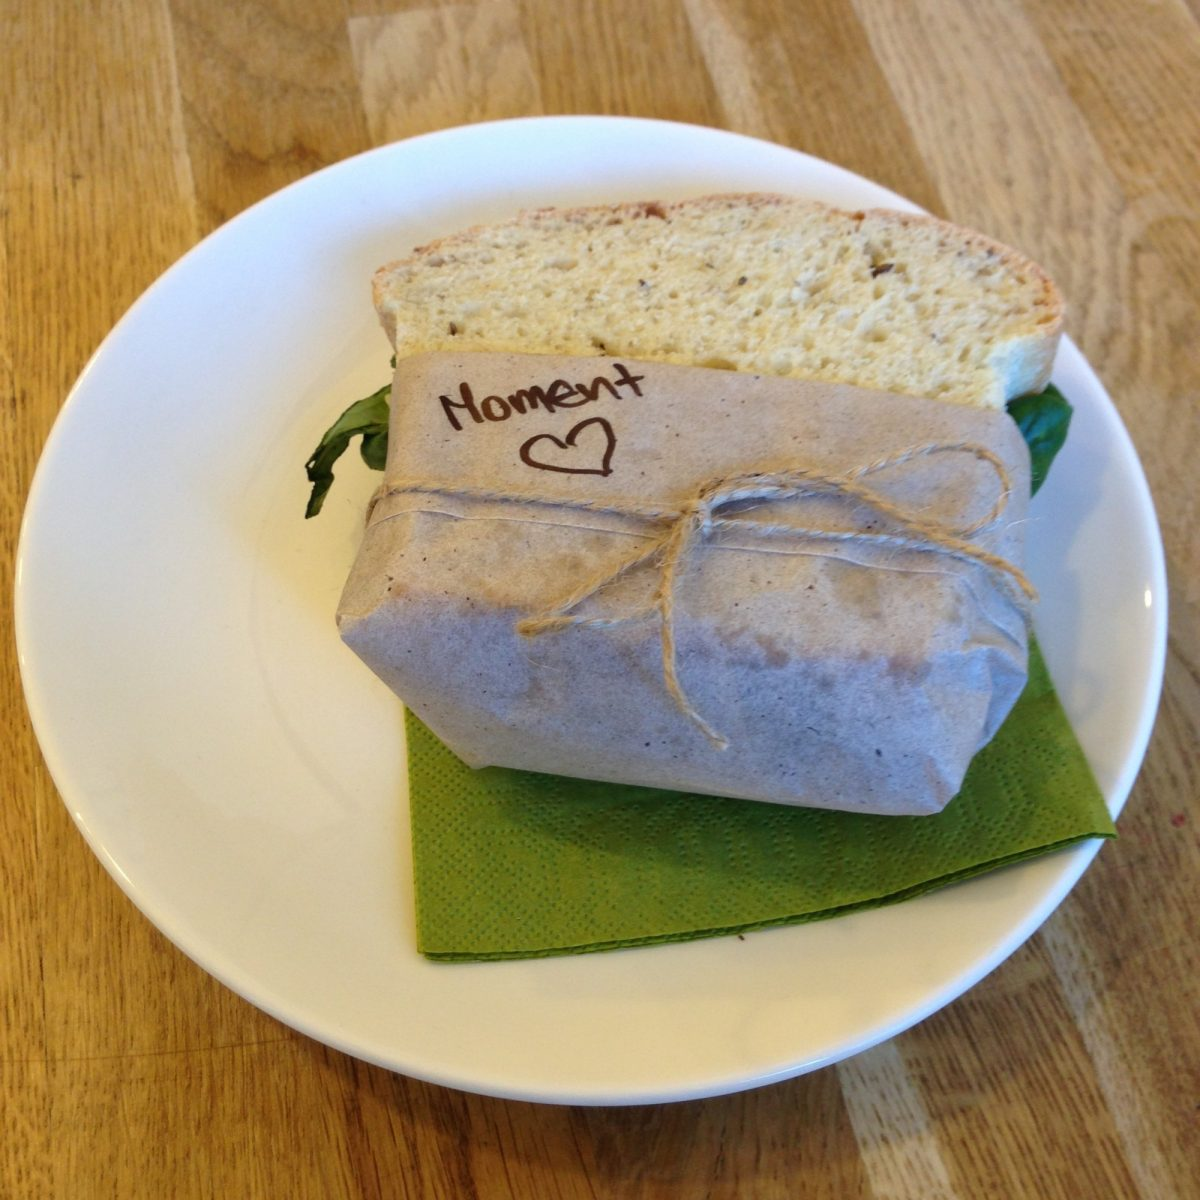 Vegan Tempeh Sandwich Moment Cafe Prague | Vegan Nom Noms